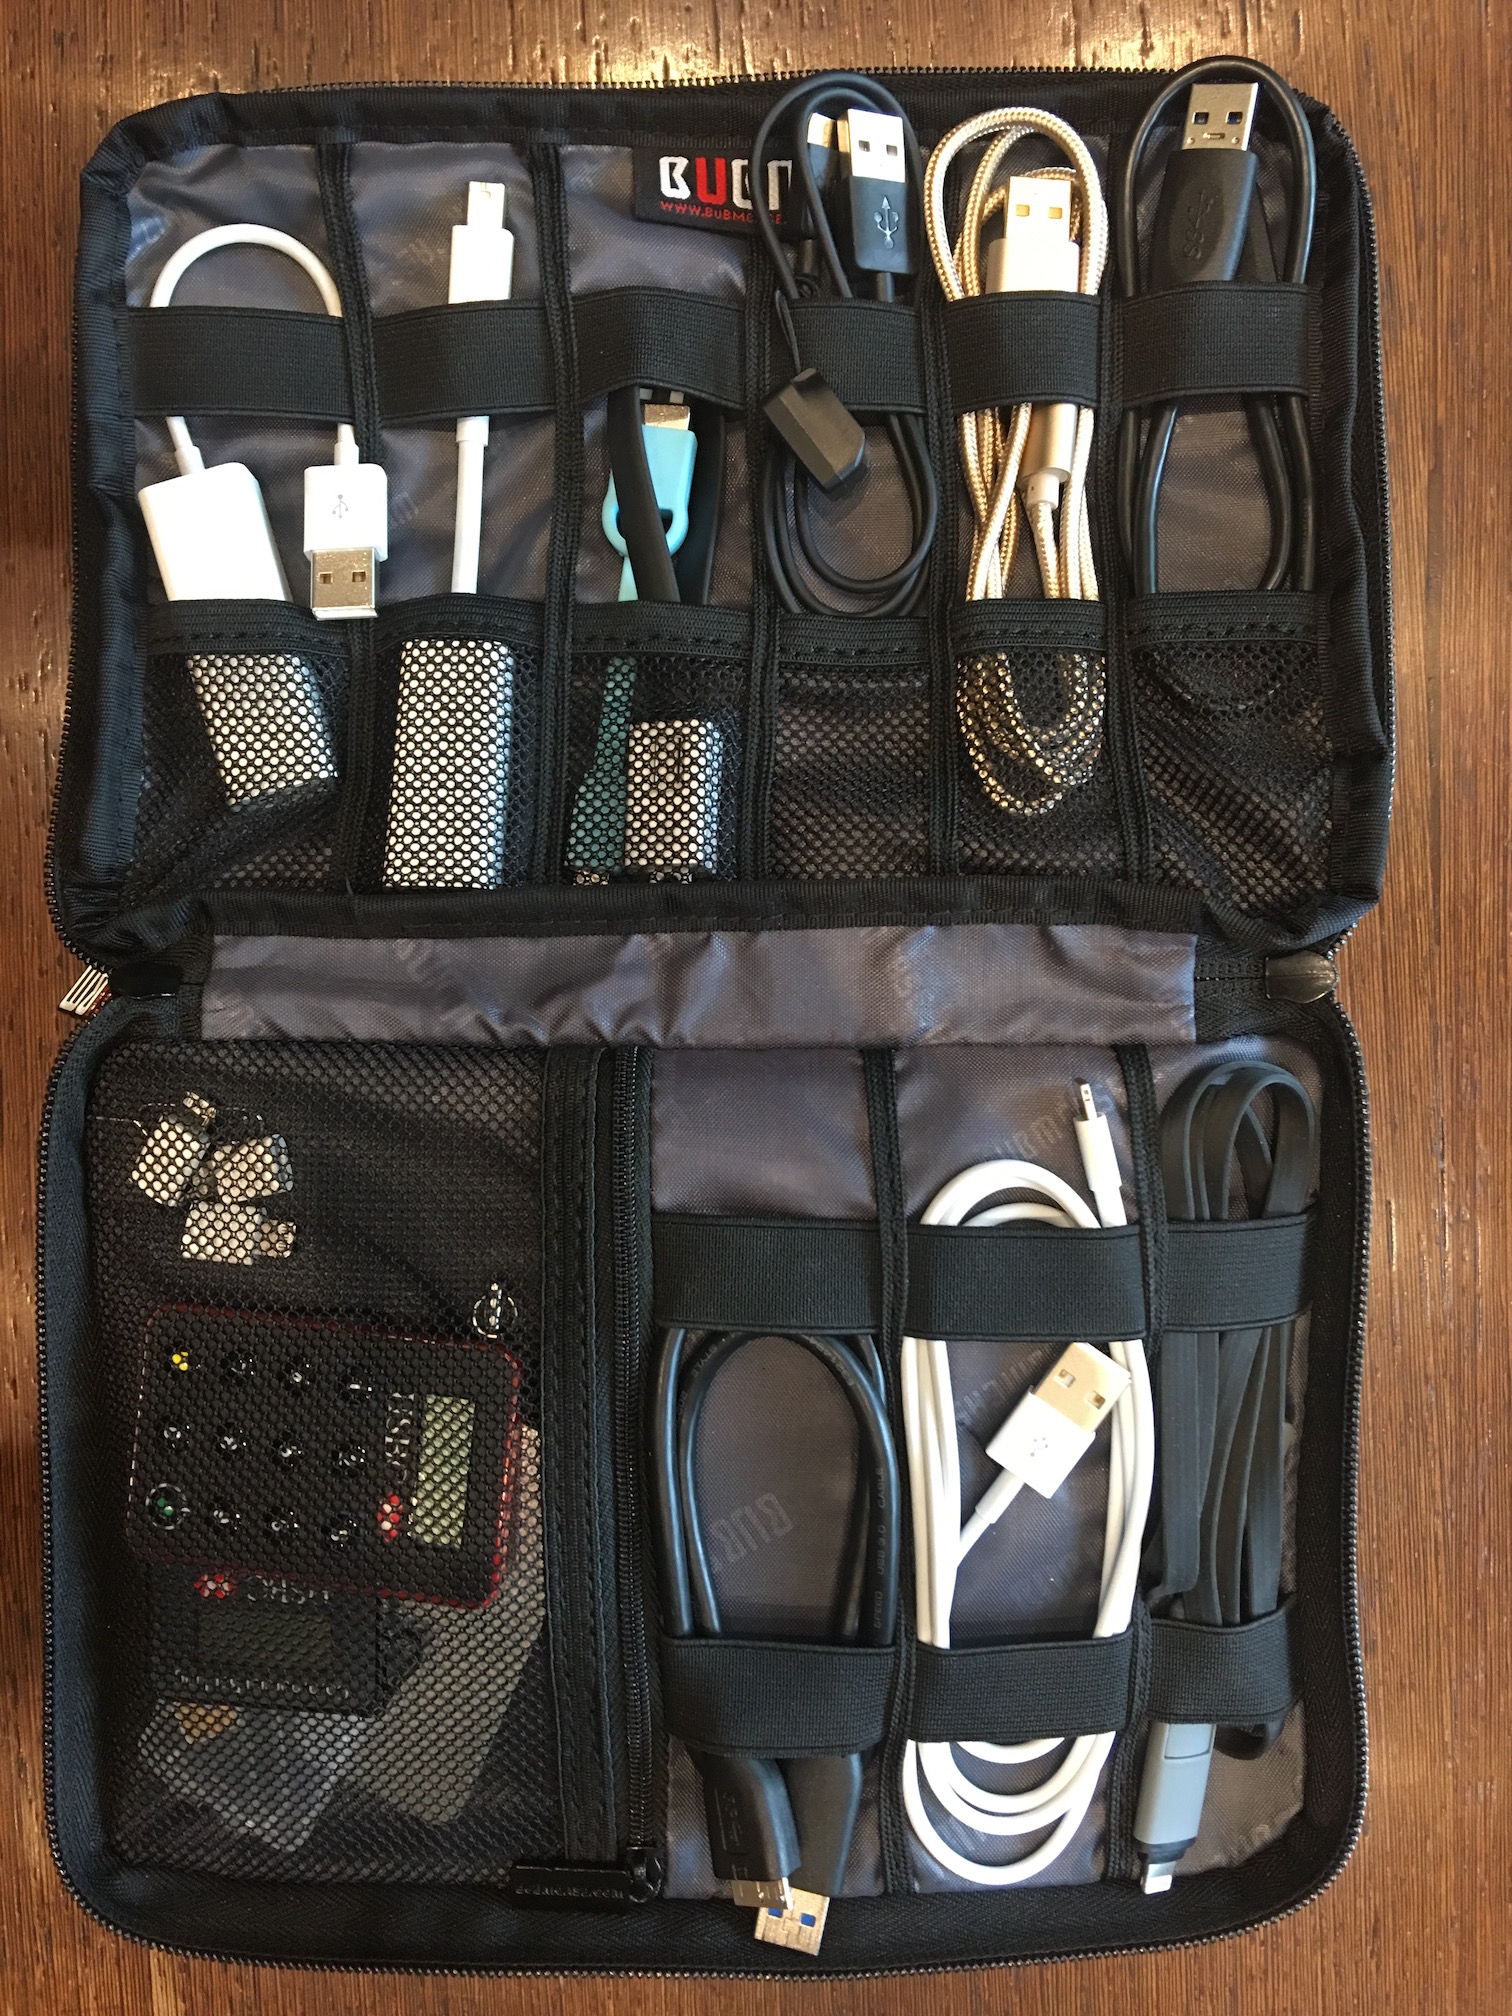 Travel Organizers and Inserts for Bags, Handbags, Suitcases and Car Trunks